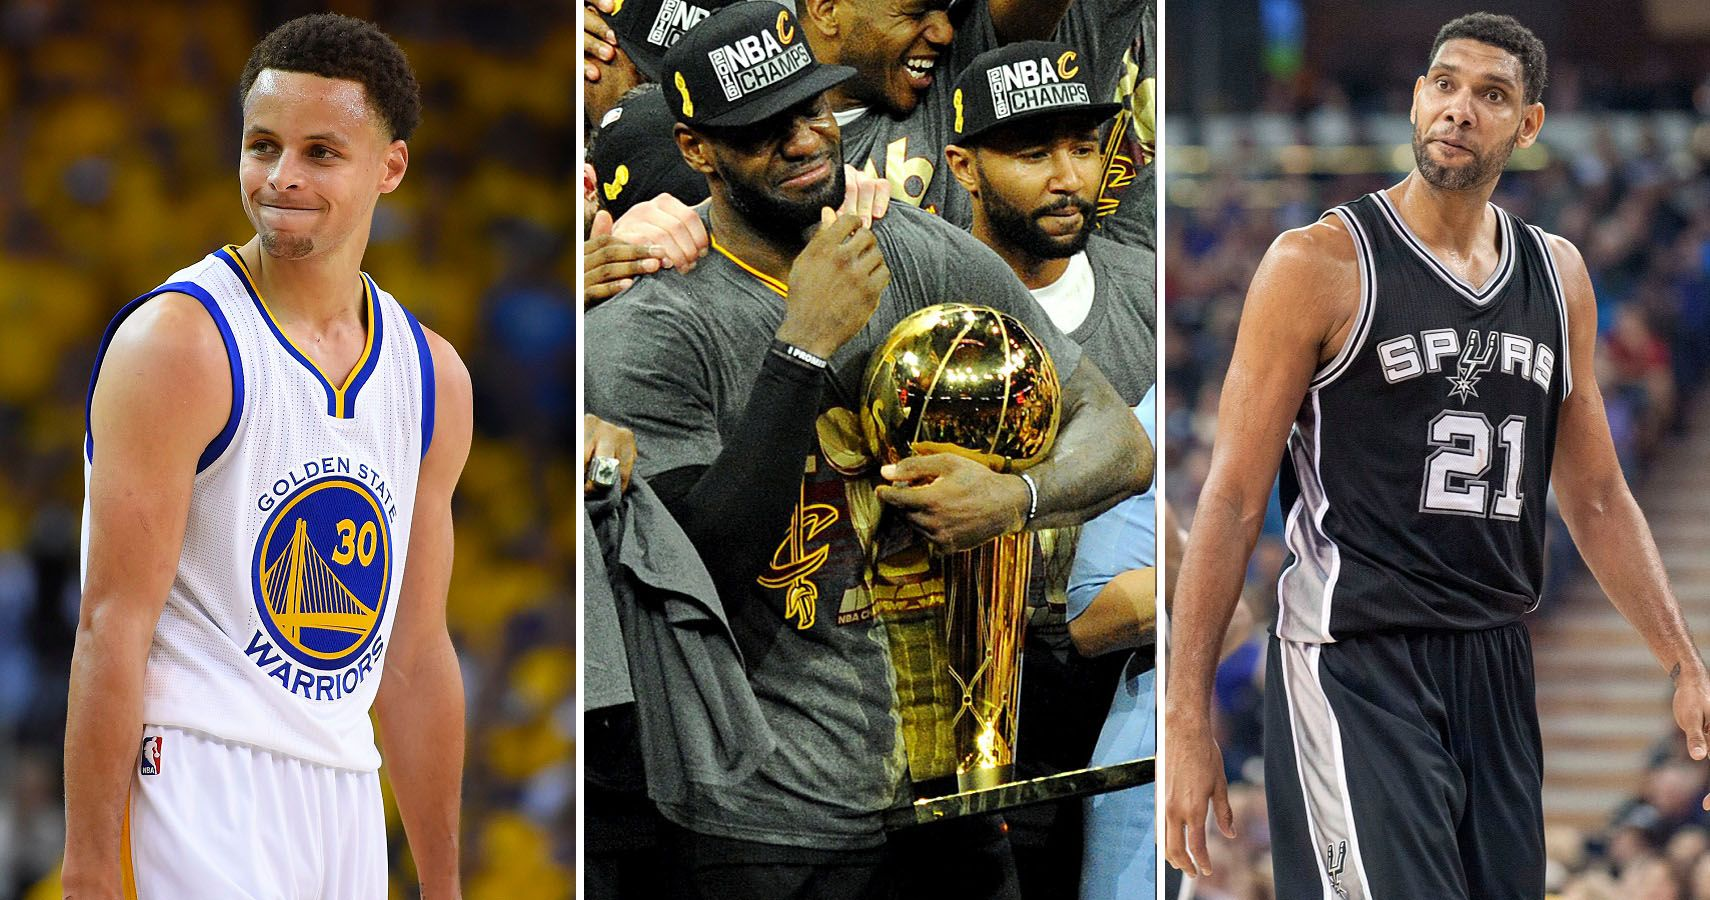 Ranking The Starting Five Players Of The Last Three NBA Champions